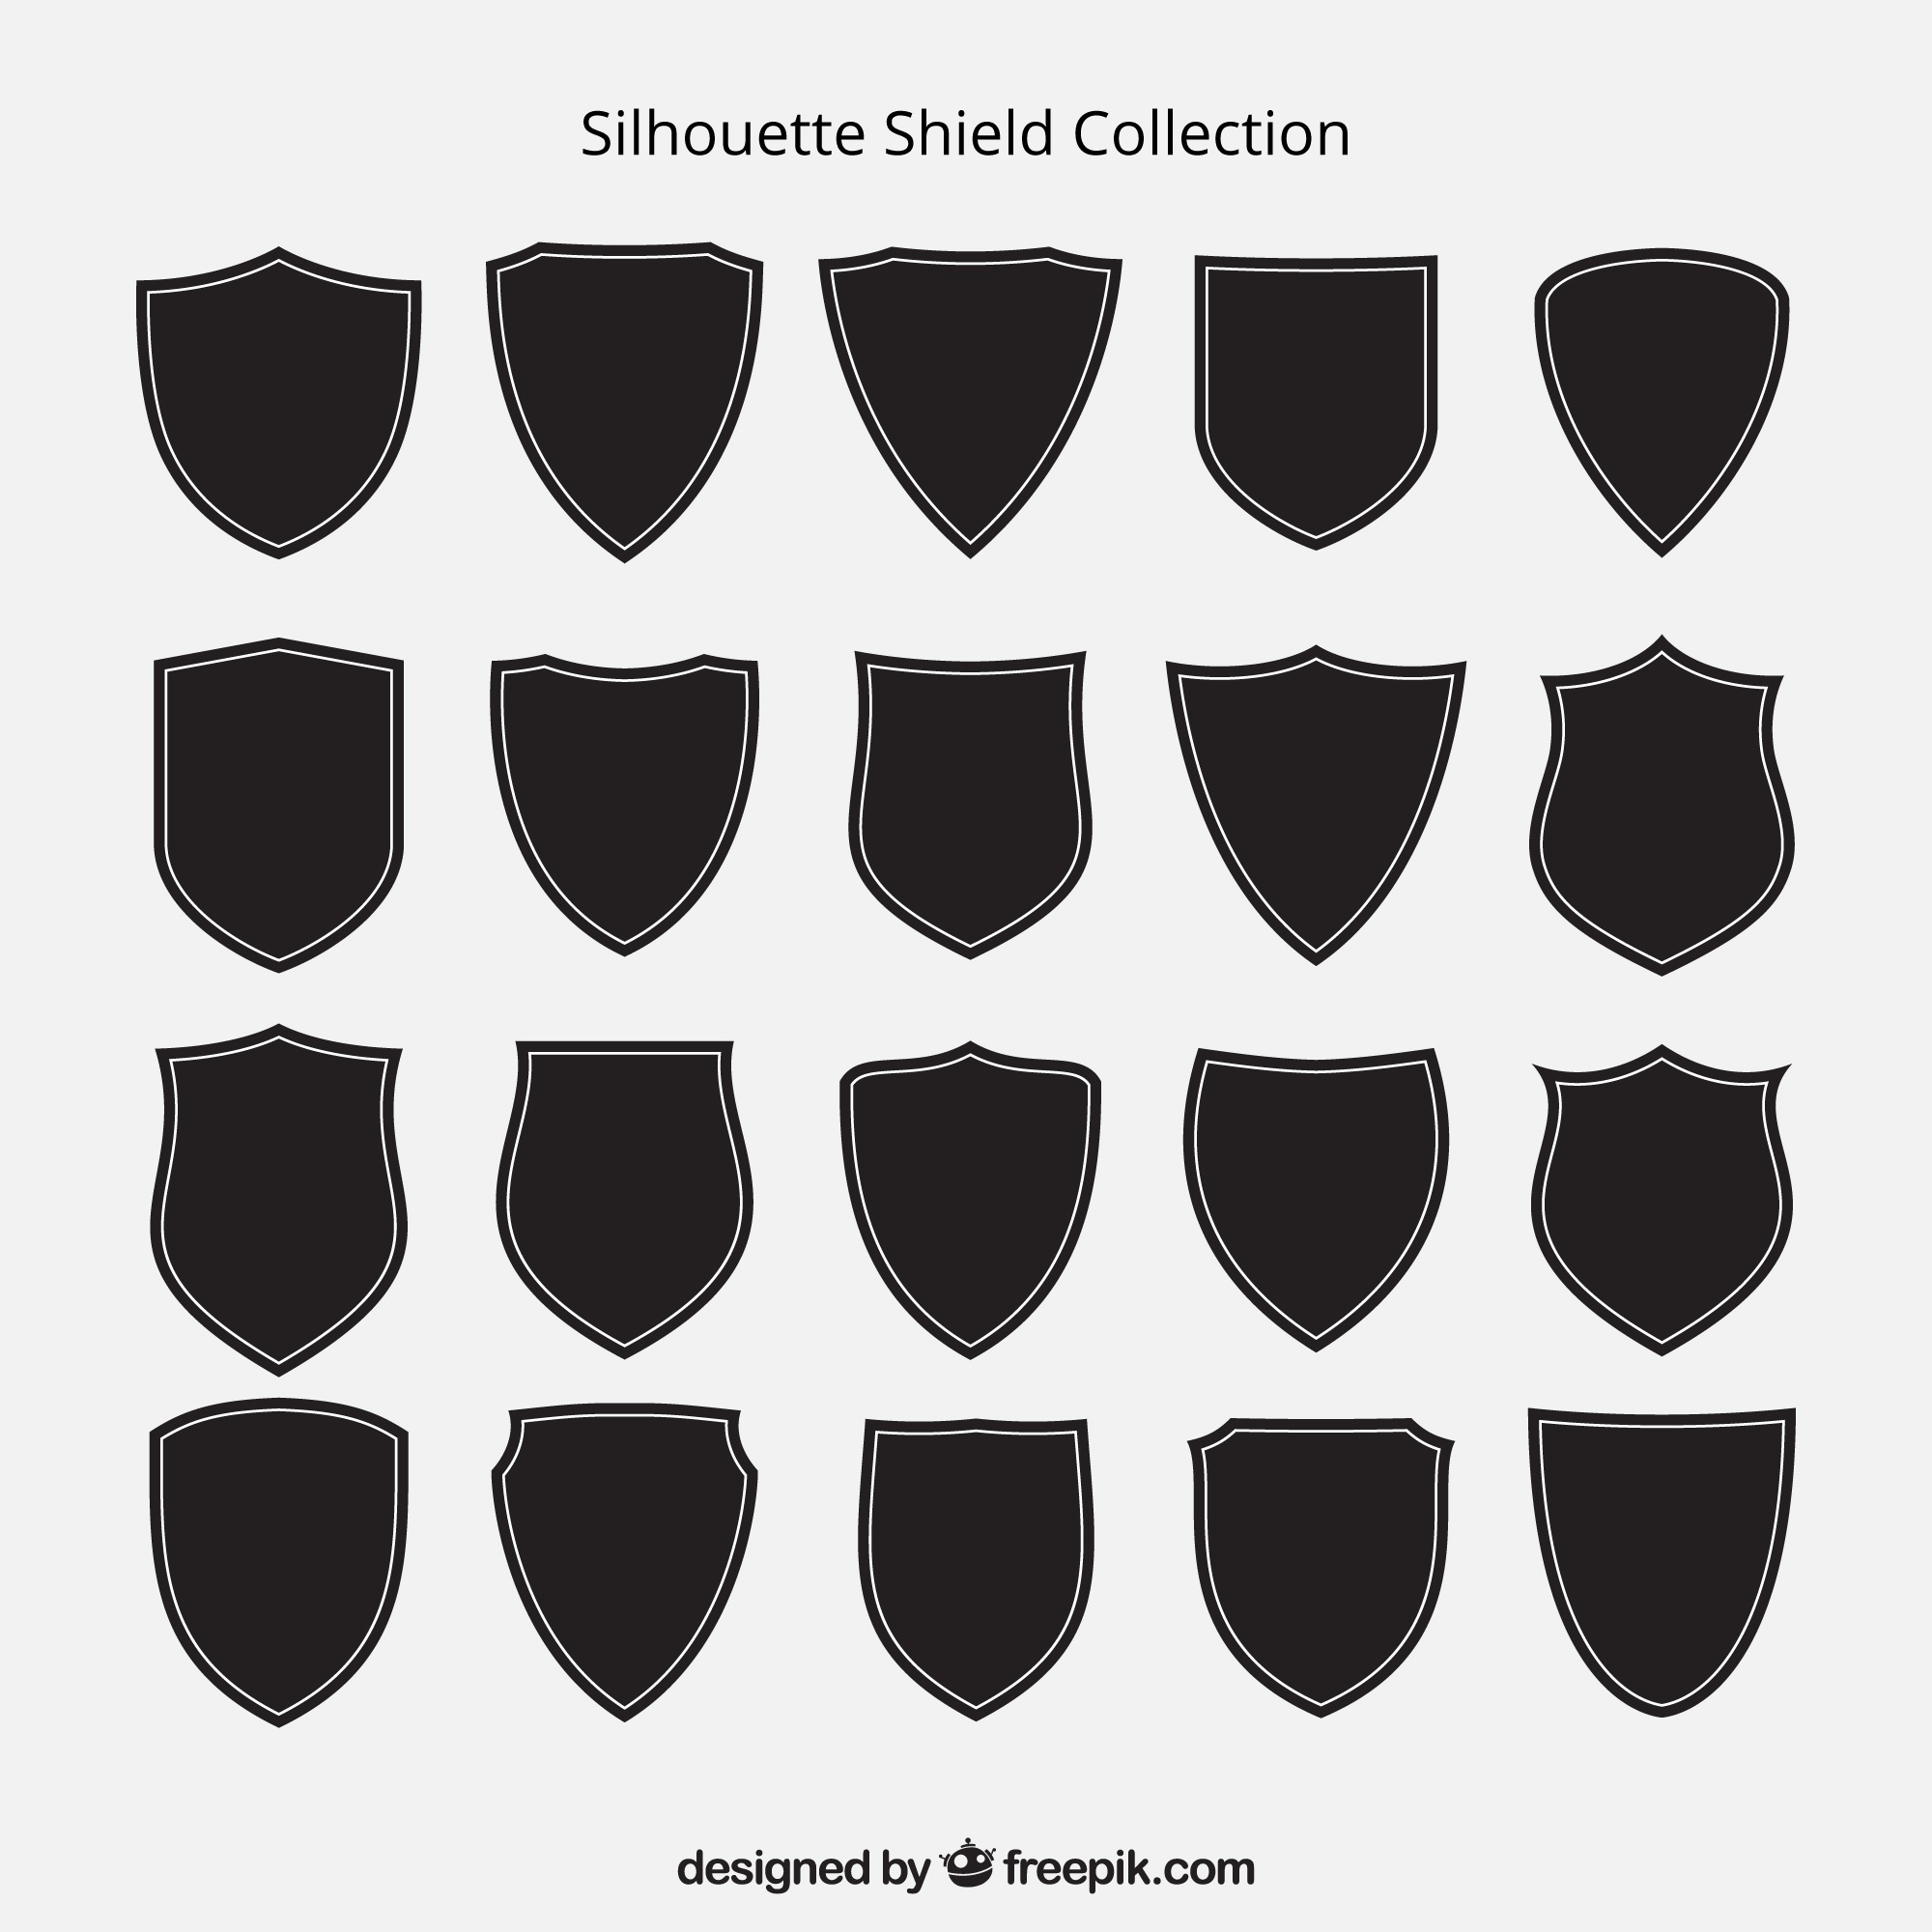 Collection of shield silhouettes